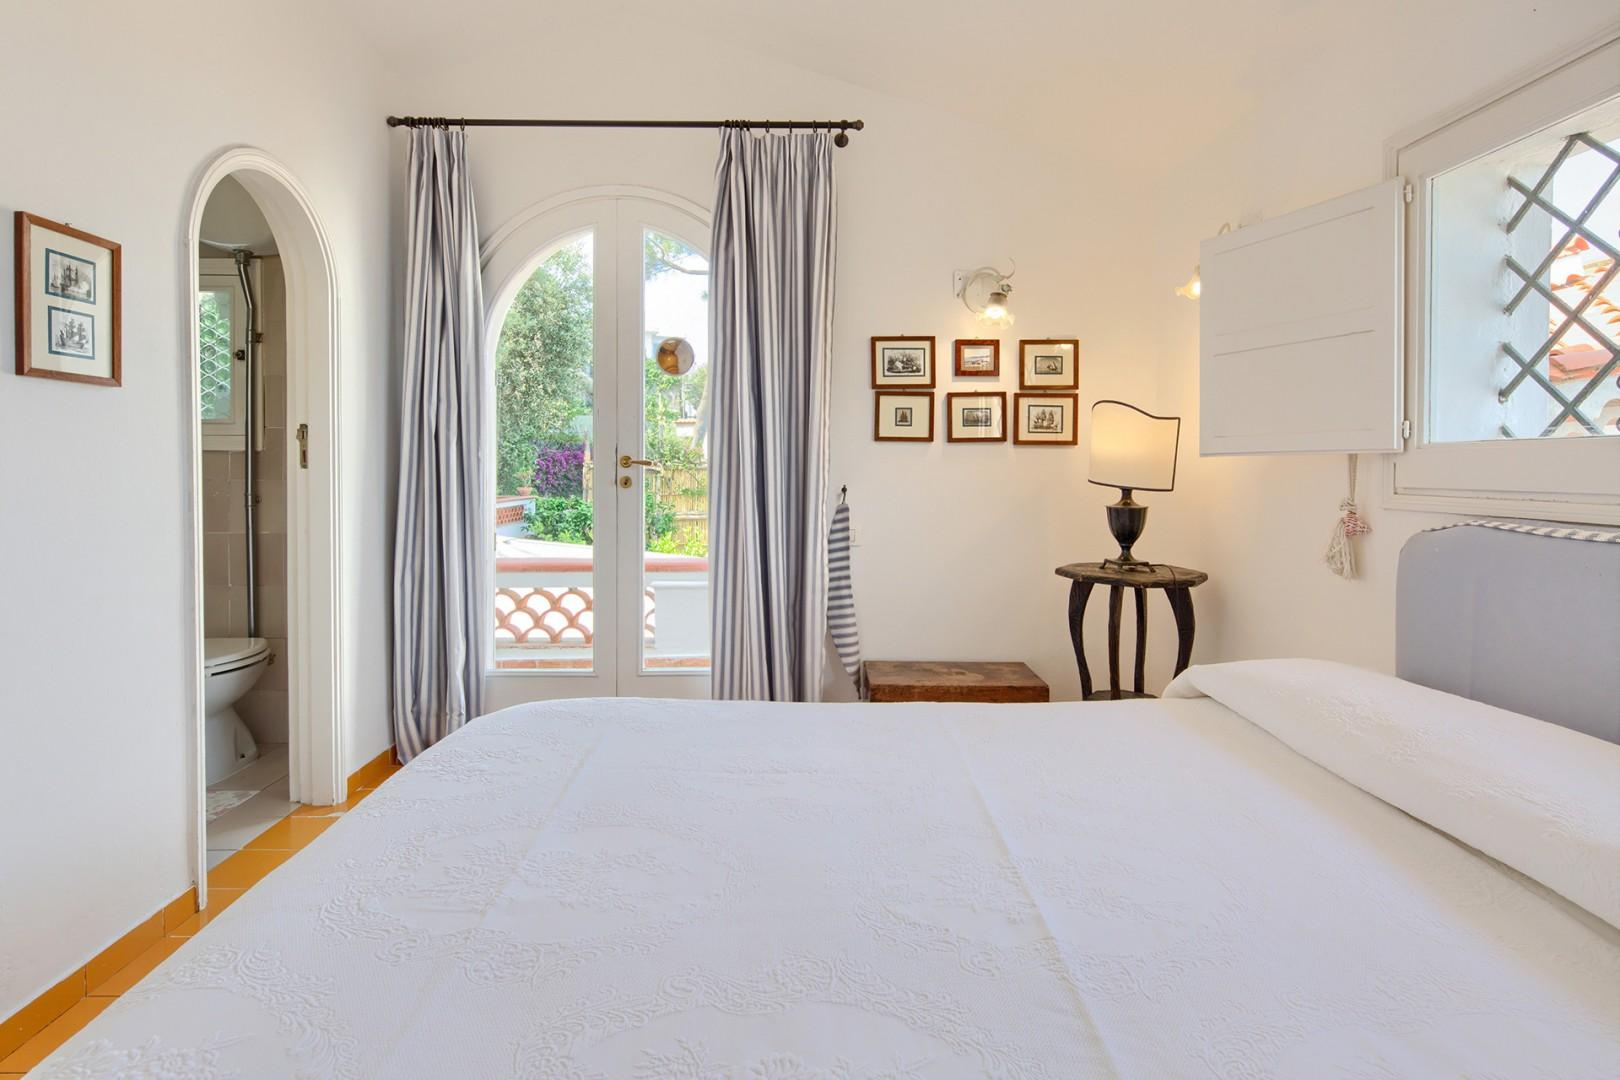 This bedroom has a private terrace access.